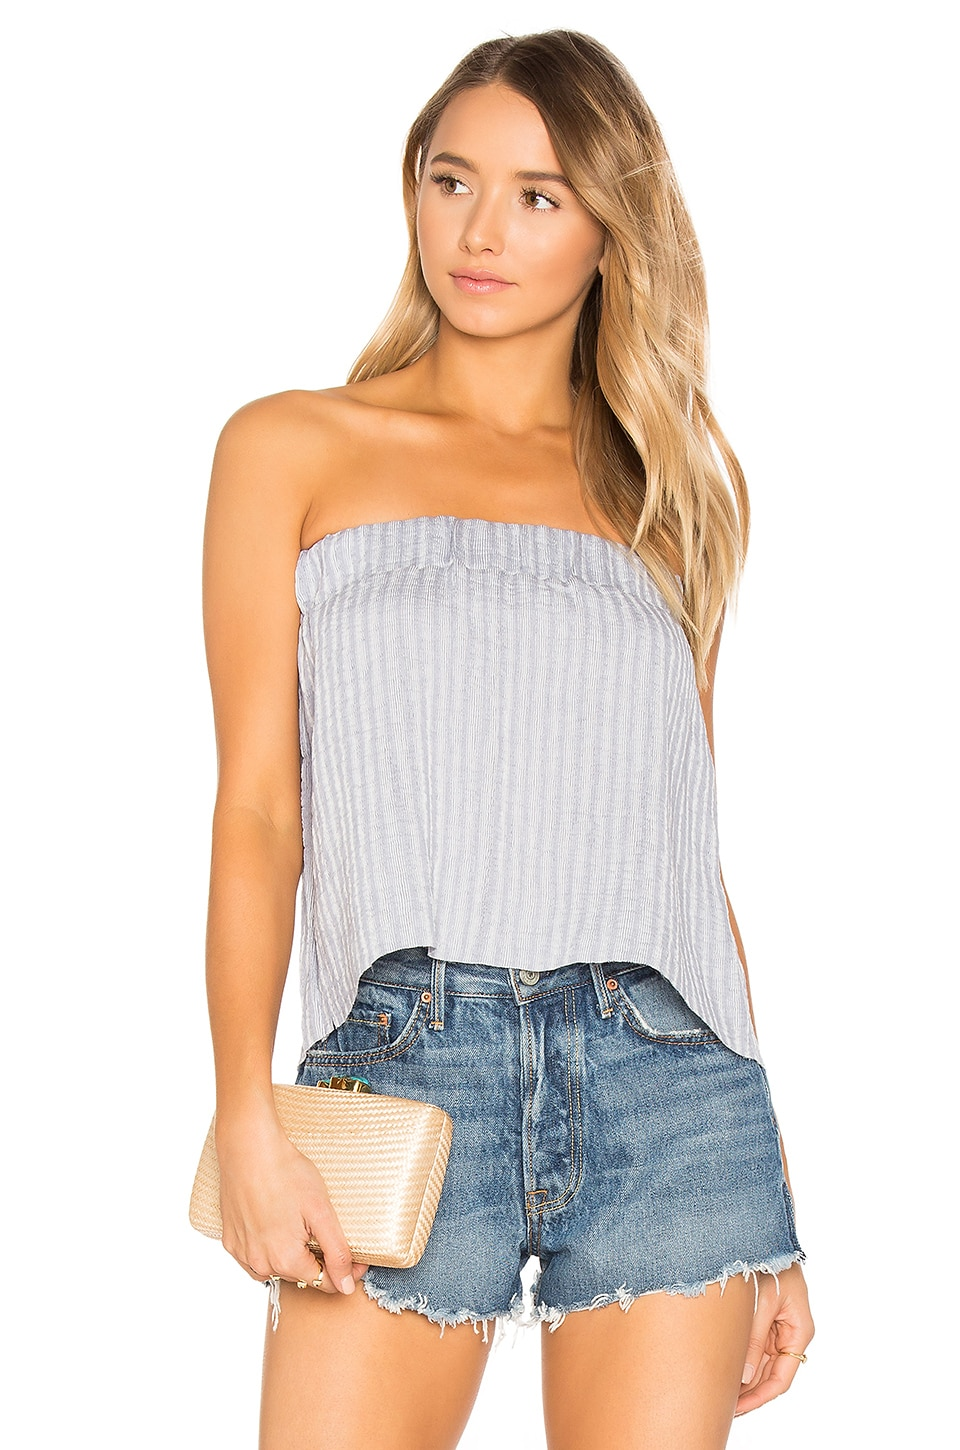 Sky Strapless Pleat Top